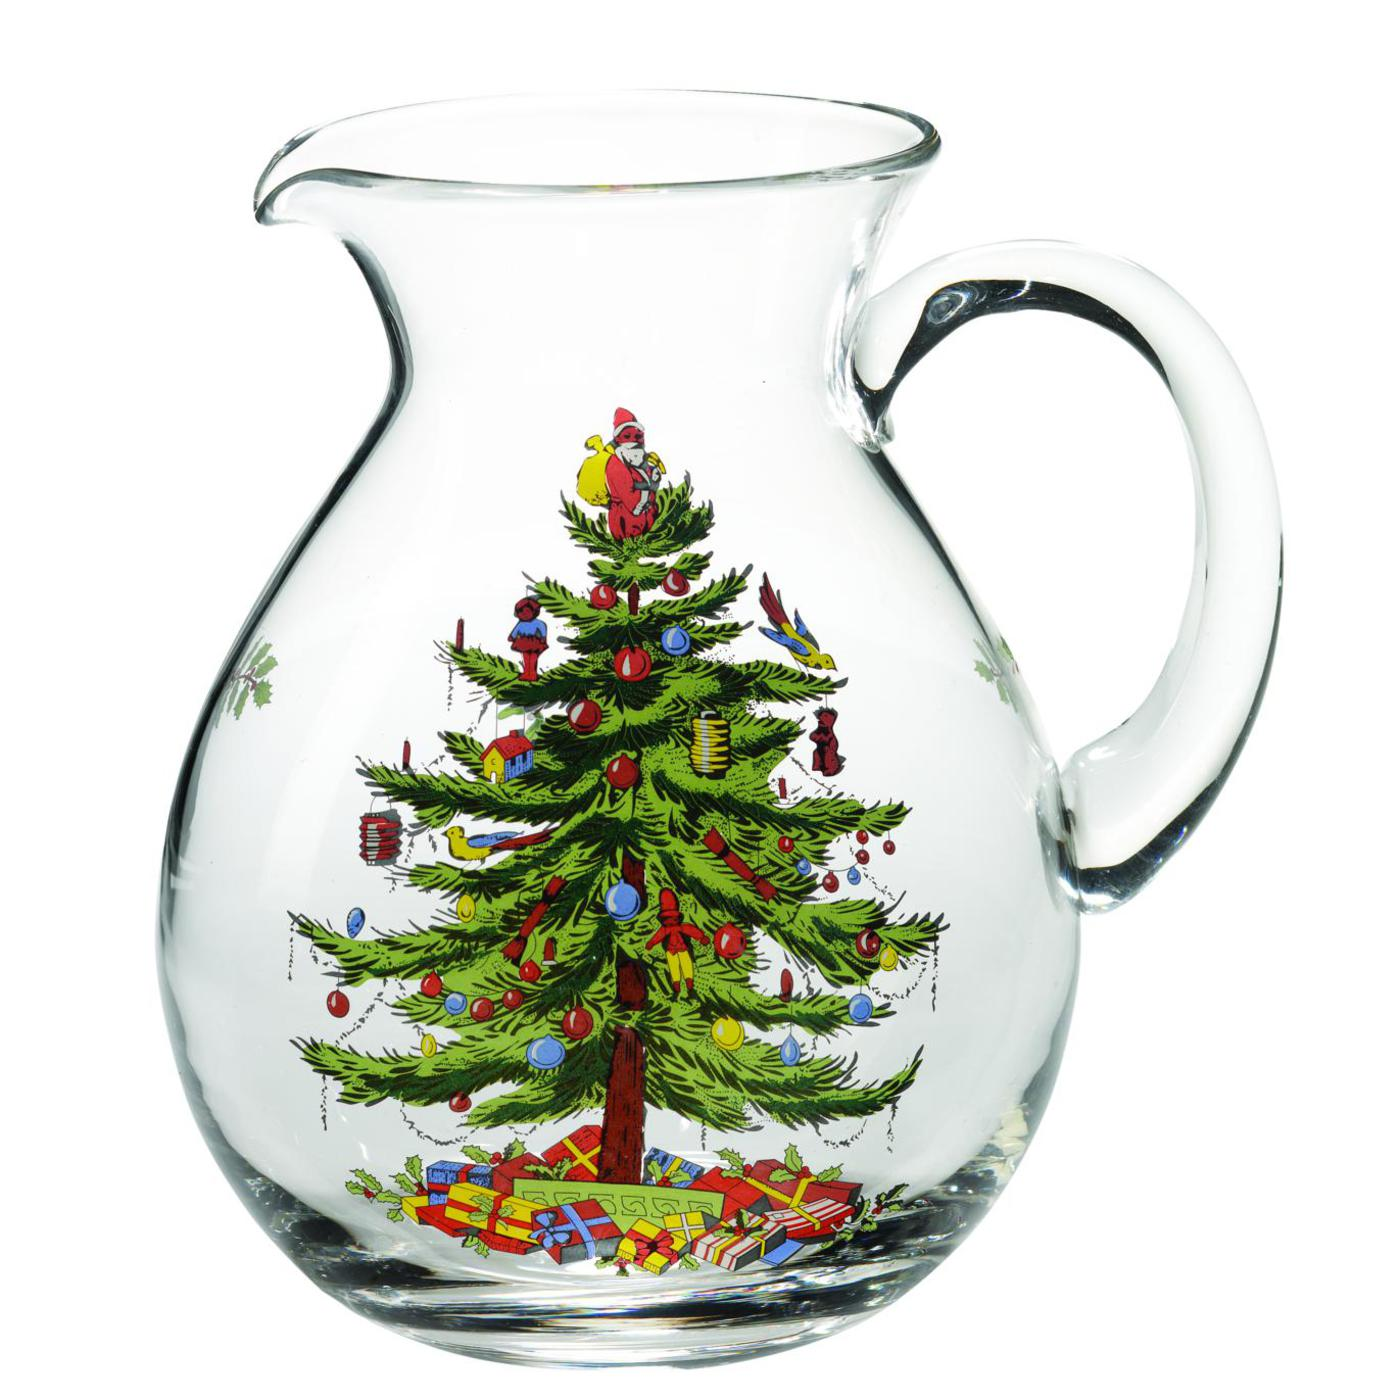 Spode Christmas Tree Glass Pitcher image number 0